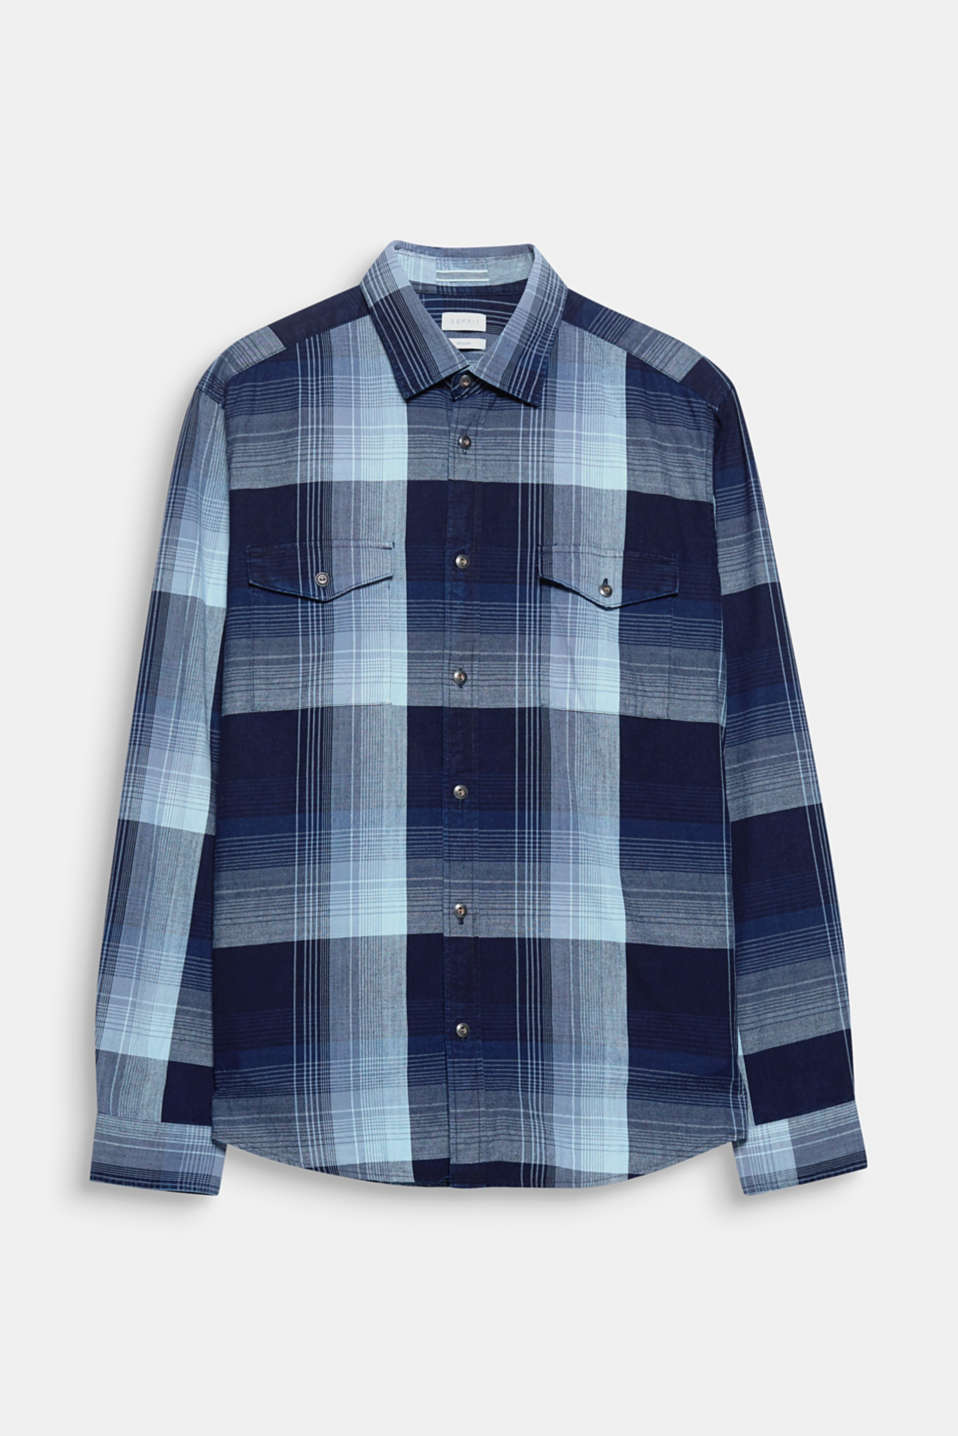 Indigo-dyed! The premium indigo dye enhances the check pattern of this shirt.